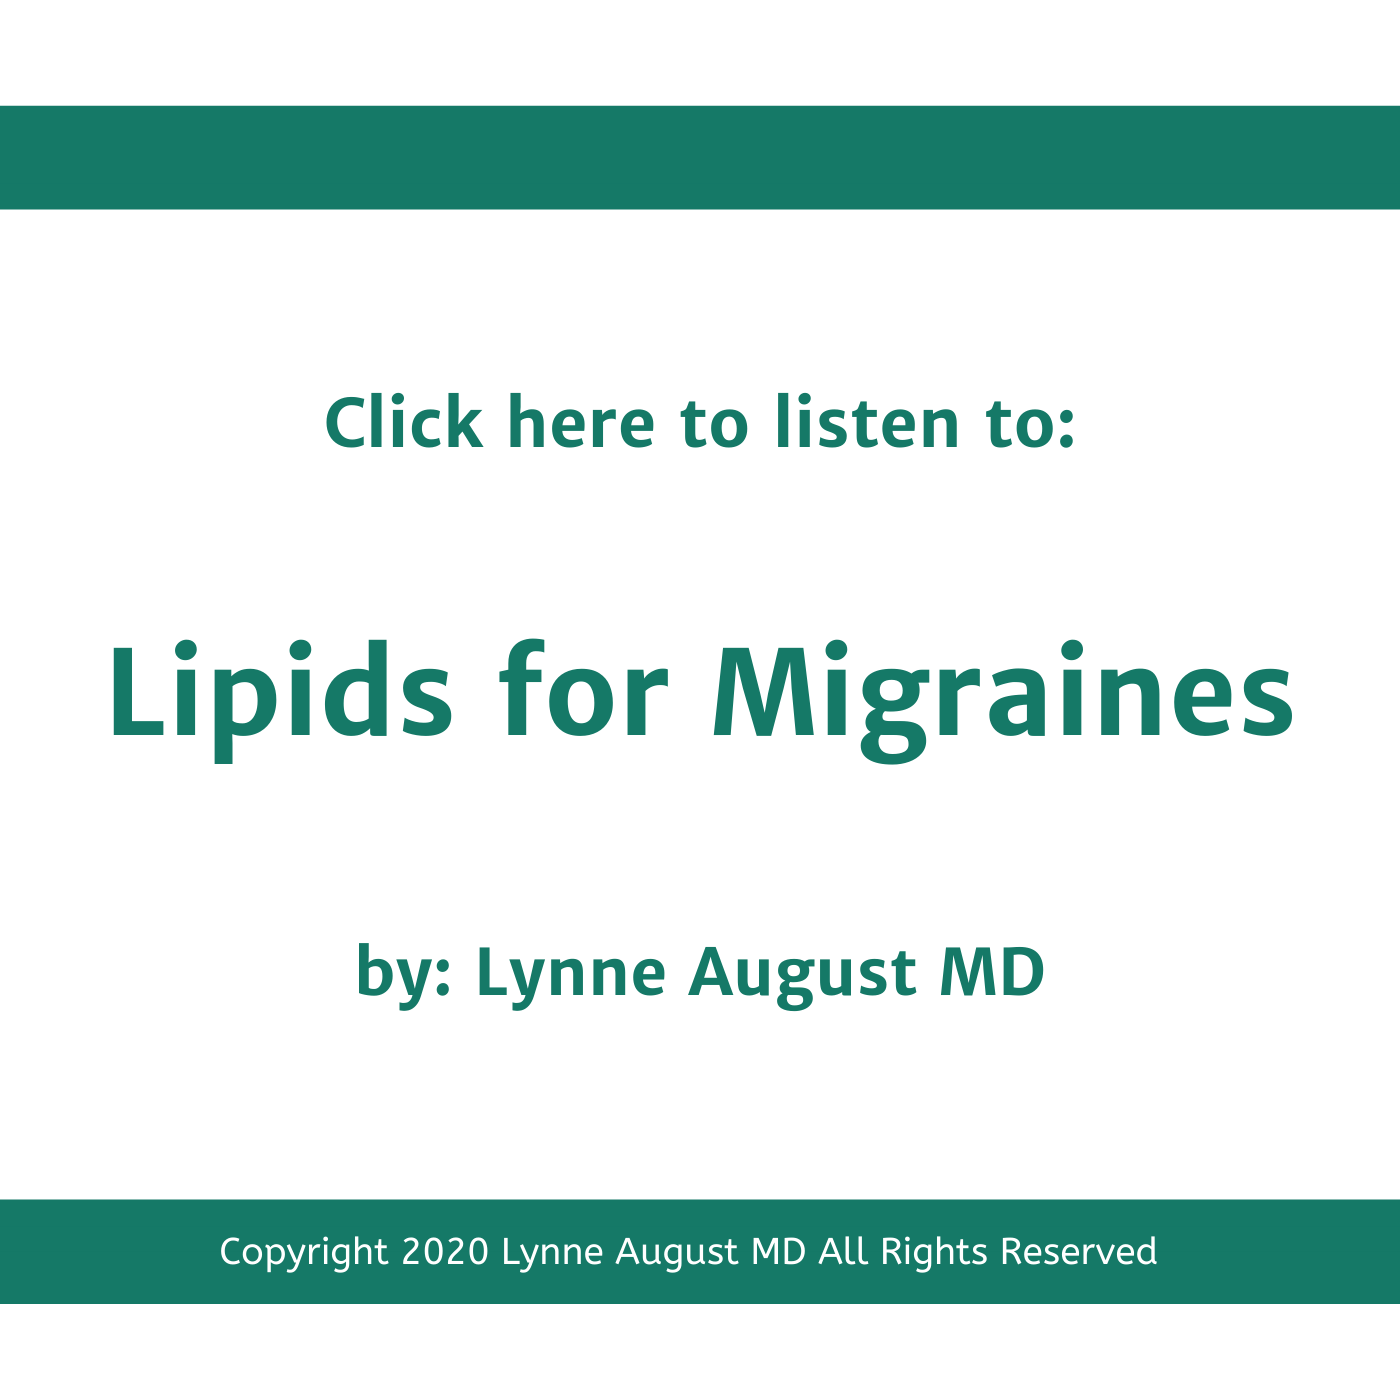 Podcast title image for Lipids for Migraines by Lynne August